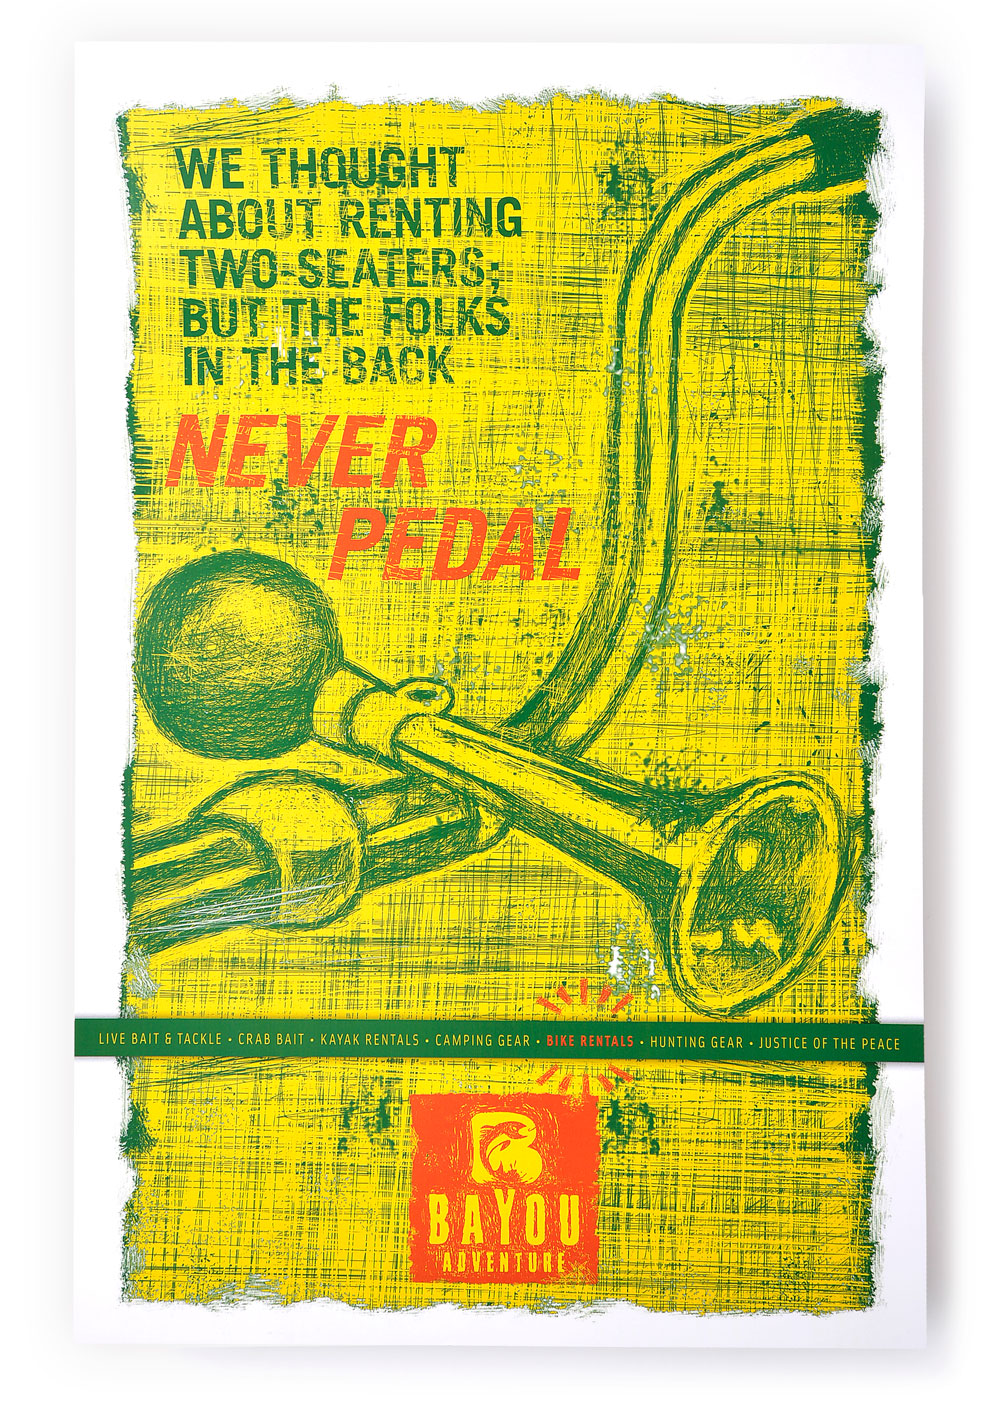 Bayou Adventure Poster Design - Never Pedal